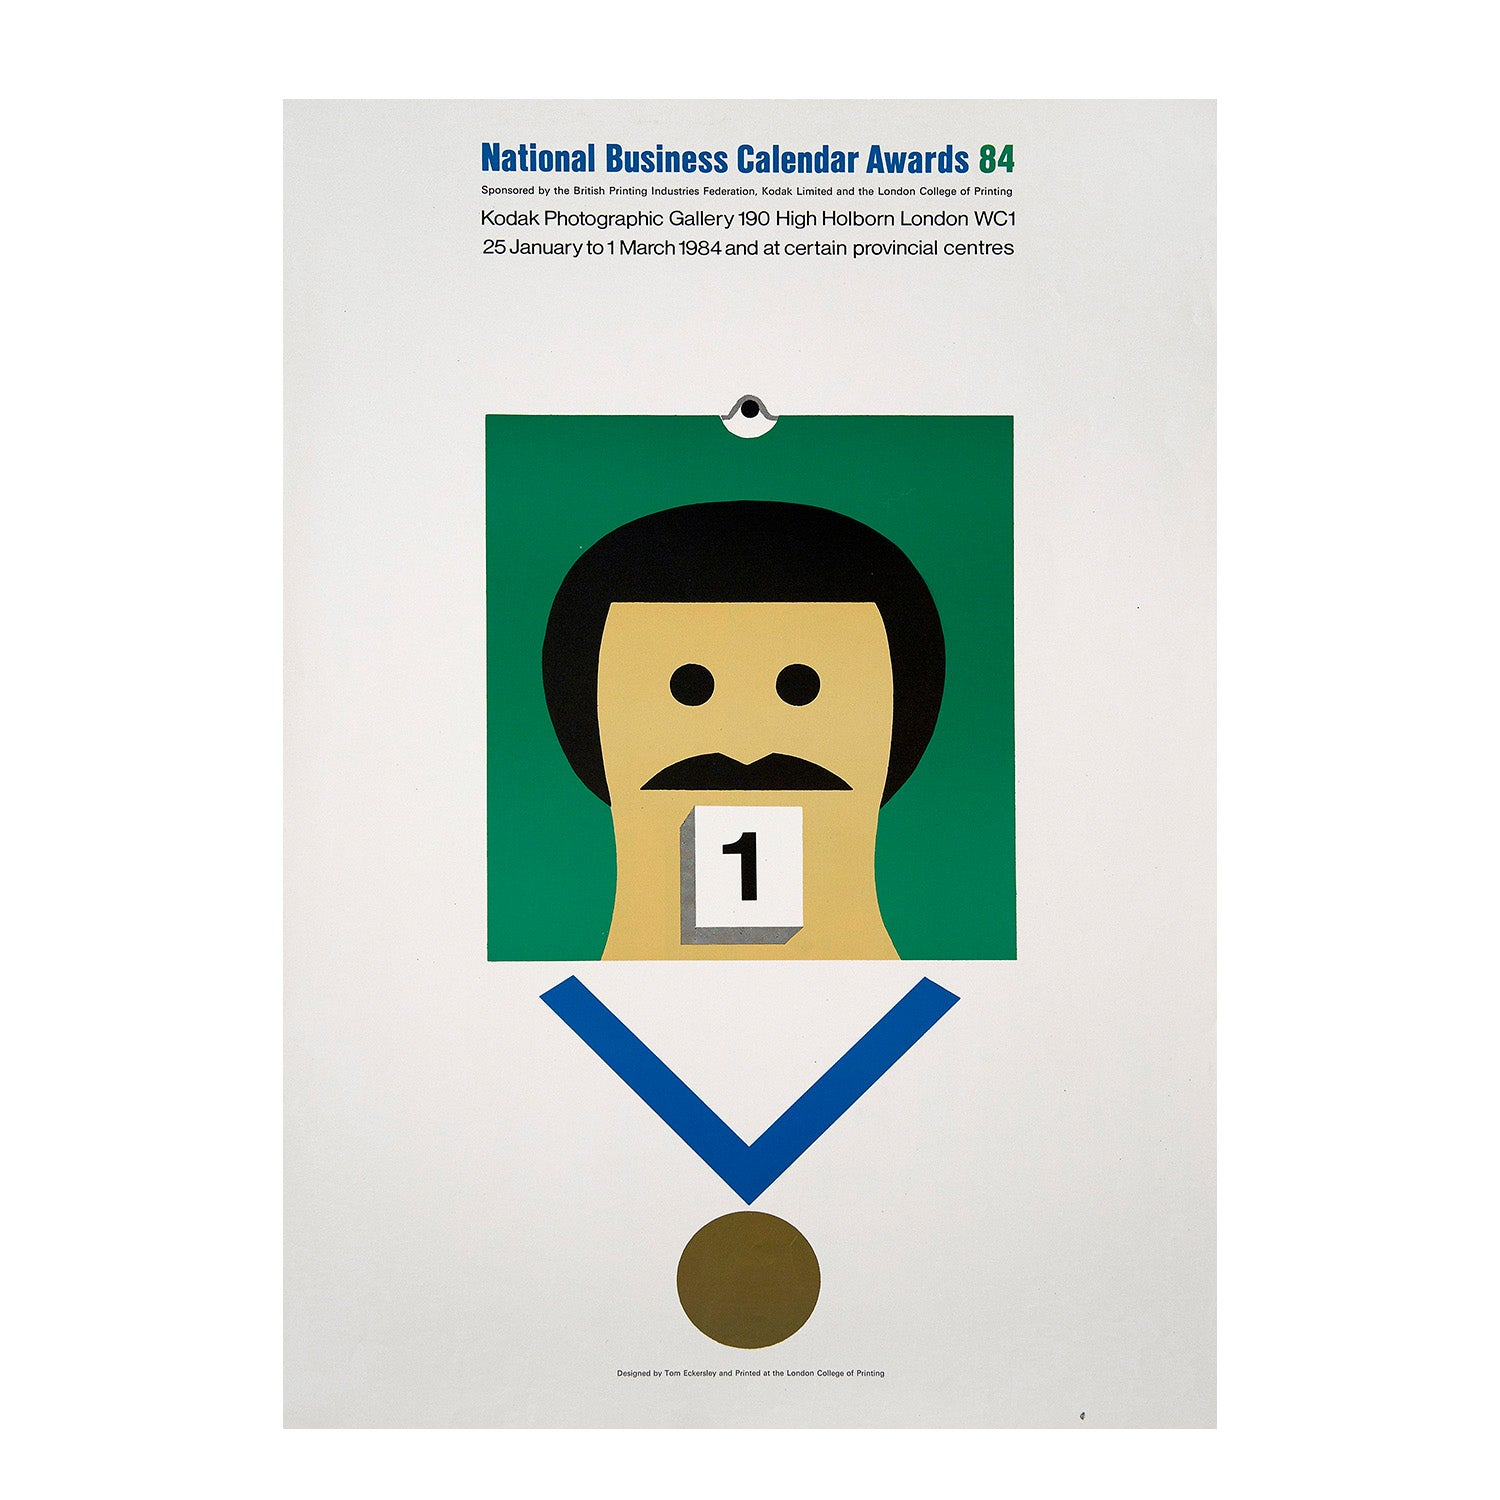 National Business Calendar Awards 84